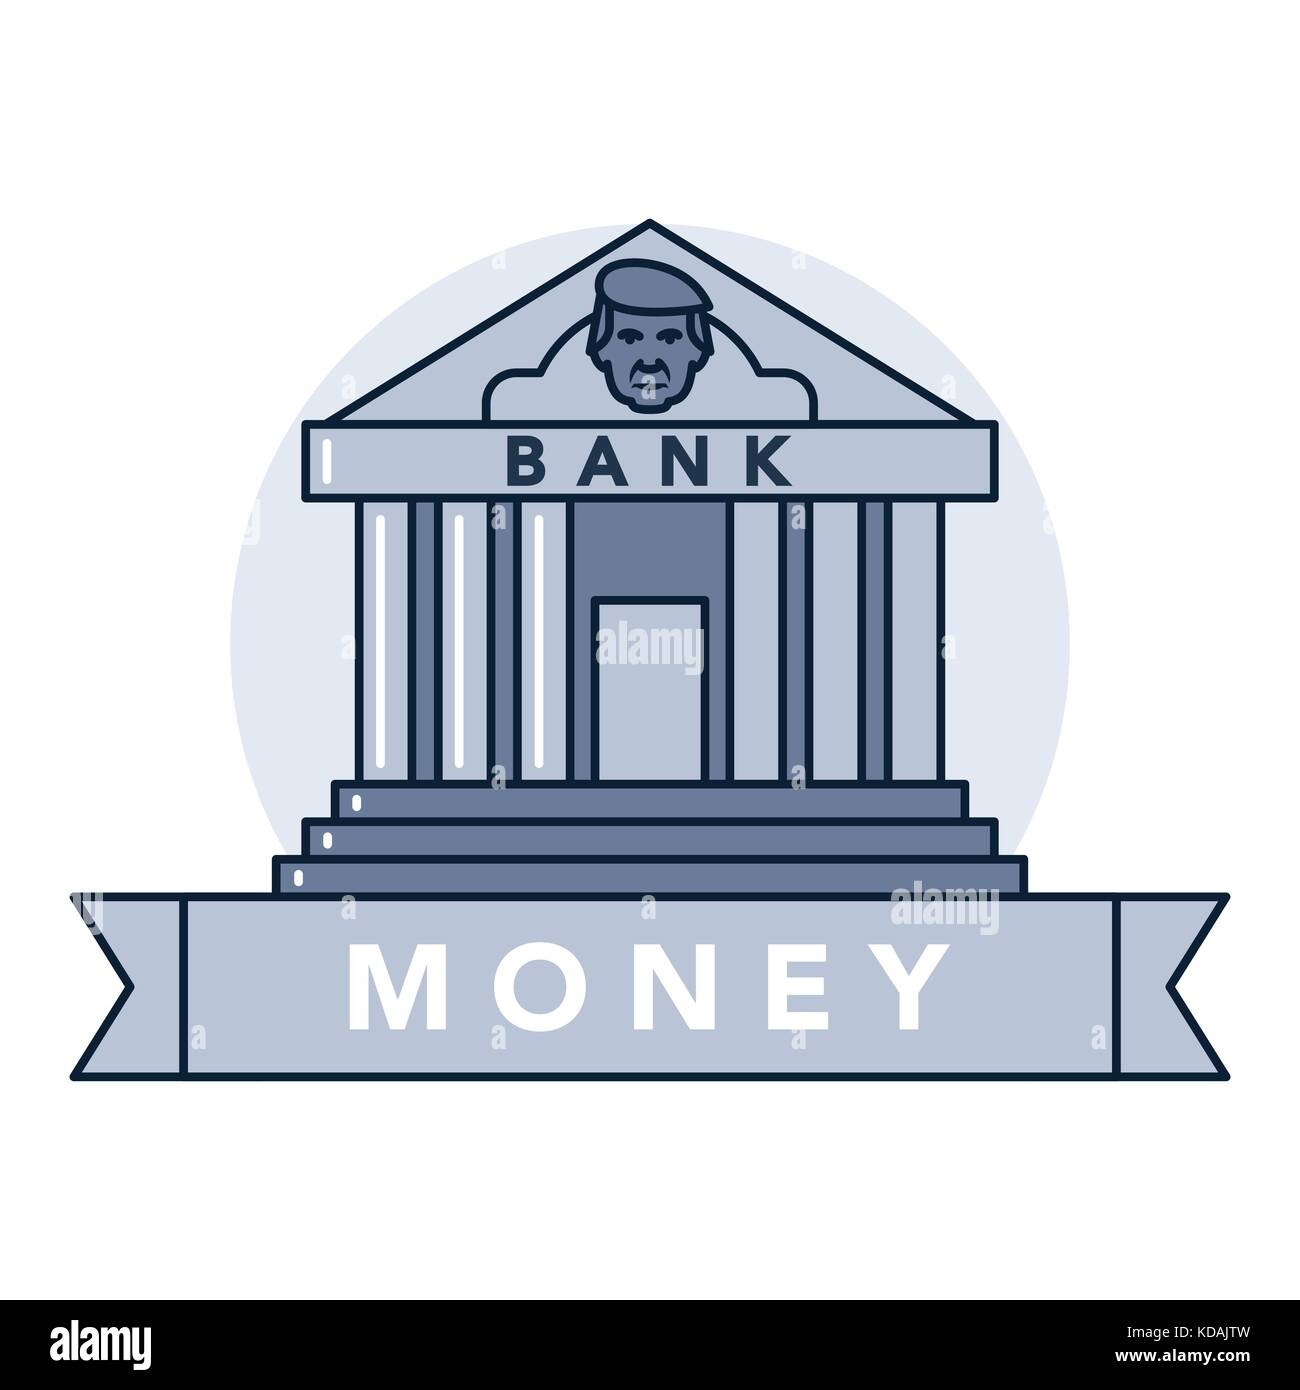 Vector illustration of a bank safe on white background with lettering. Money and financial institutions topic. - Stock Vector